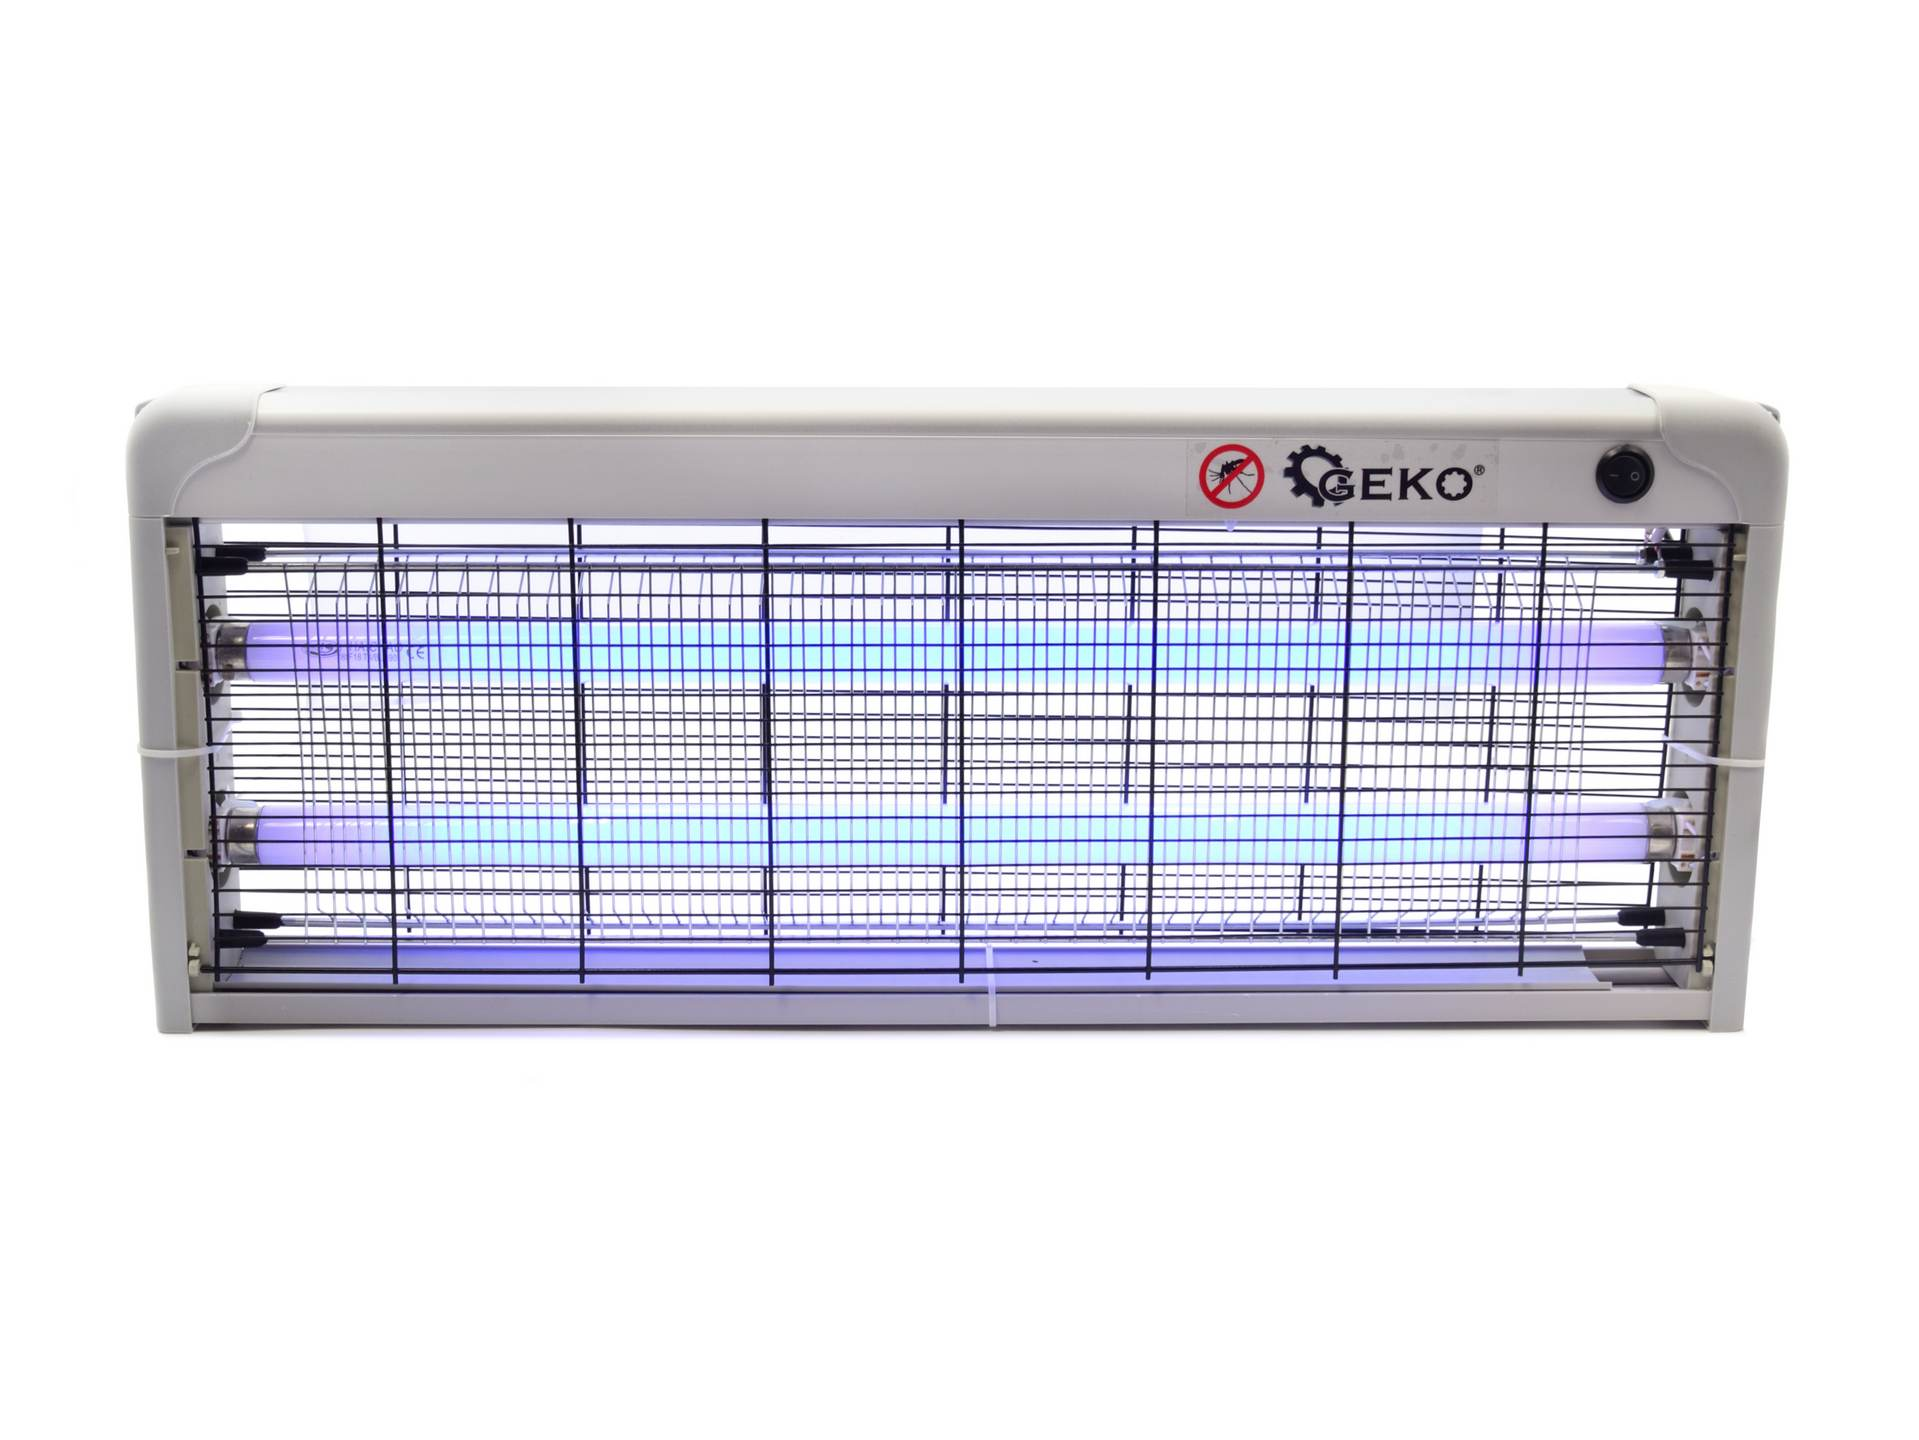 Insecticide lamp 2x20W 230V ~200m2 GEKO